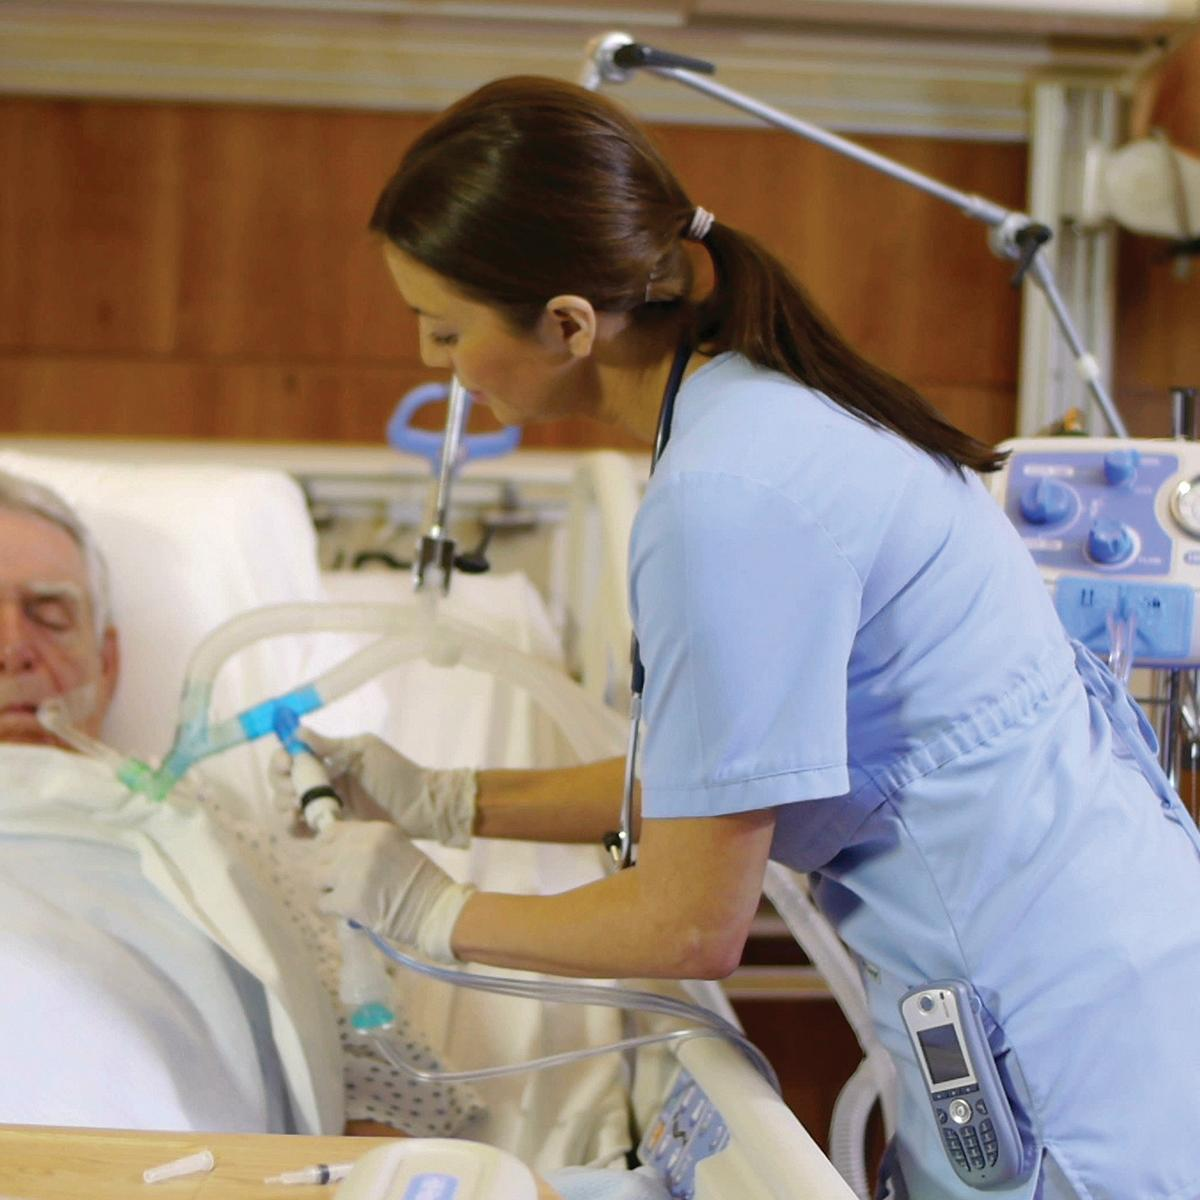 A clinician connects the MetaNeb system to administer therapy to a patient who has been intubated